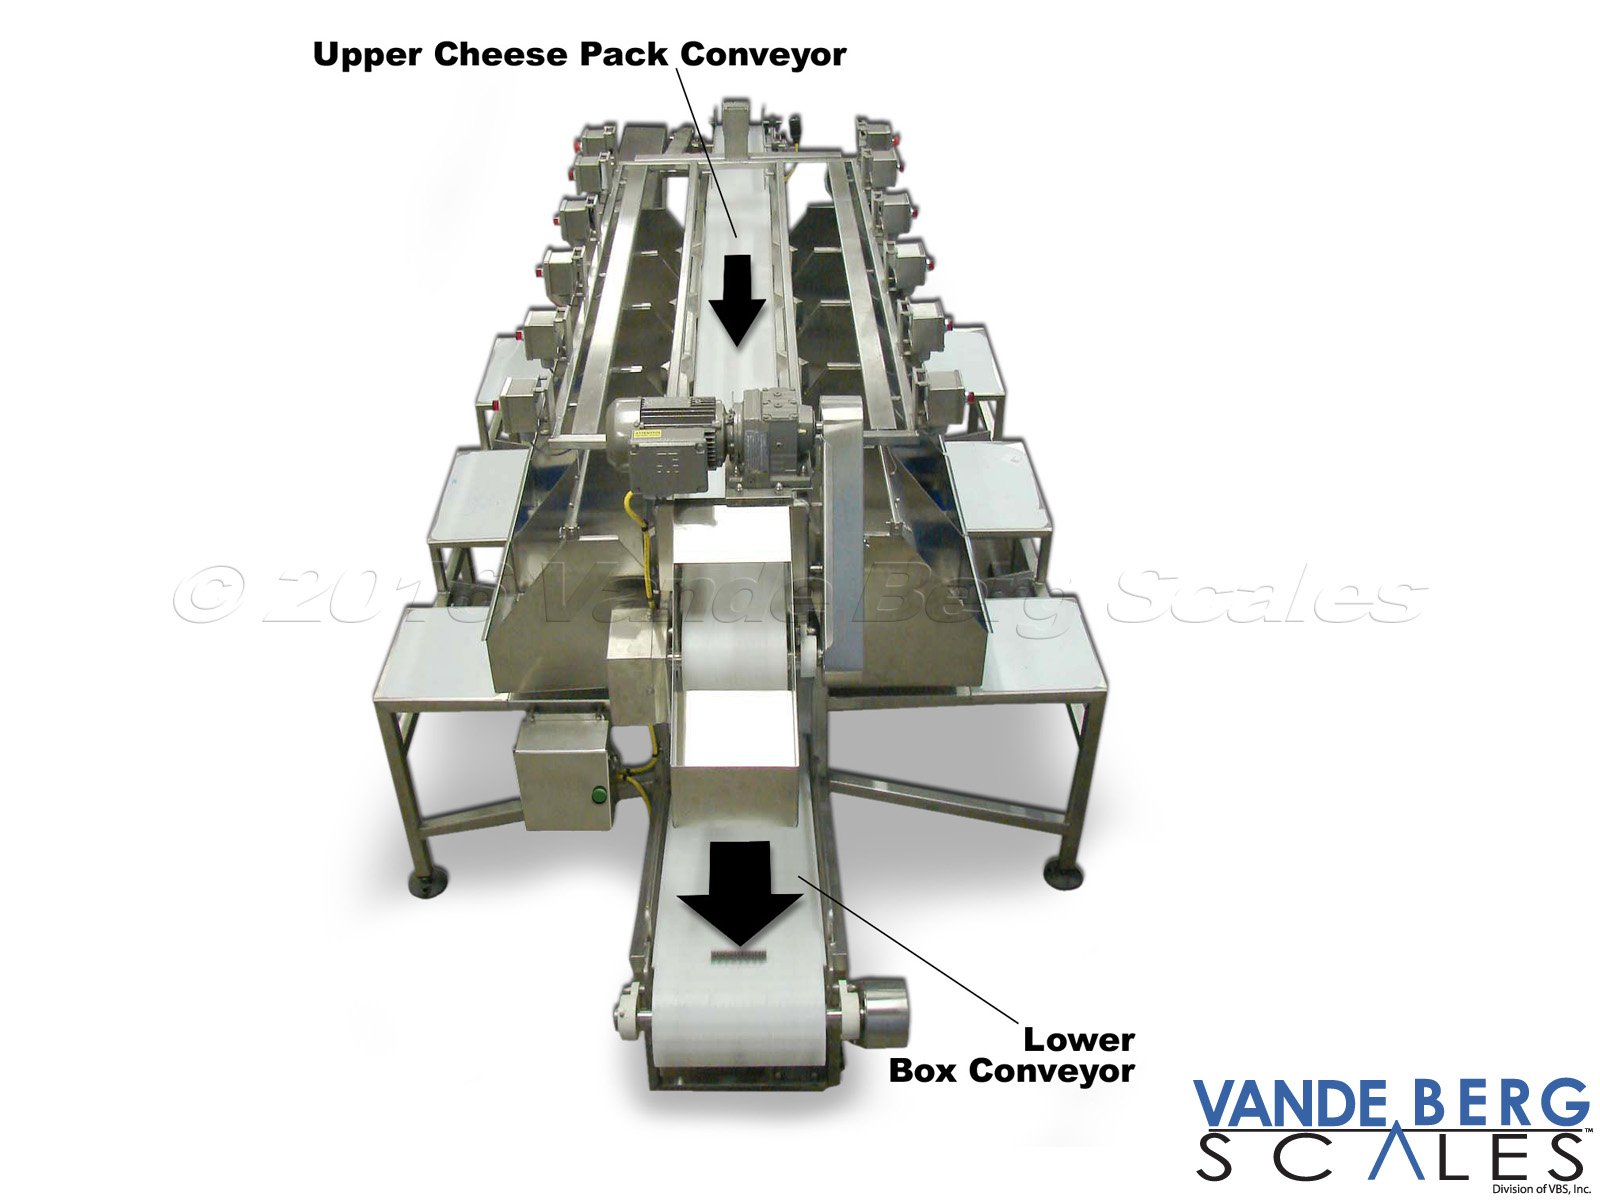 Small Product Sortation System - small product is sorted into bins. When a bin fills, a light will illuminate indicating the contents can be transferred into a box. The box is filled and then put onto the takeaway (lower) conveyor.